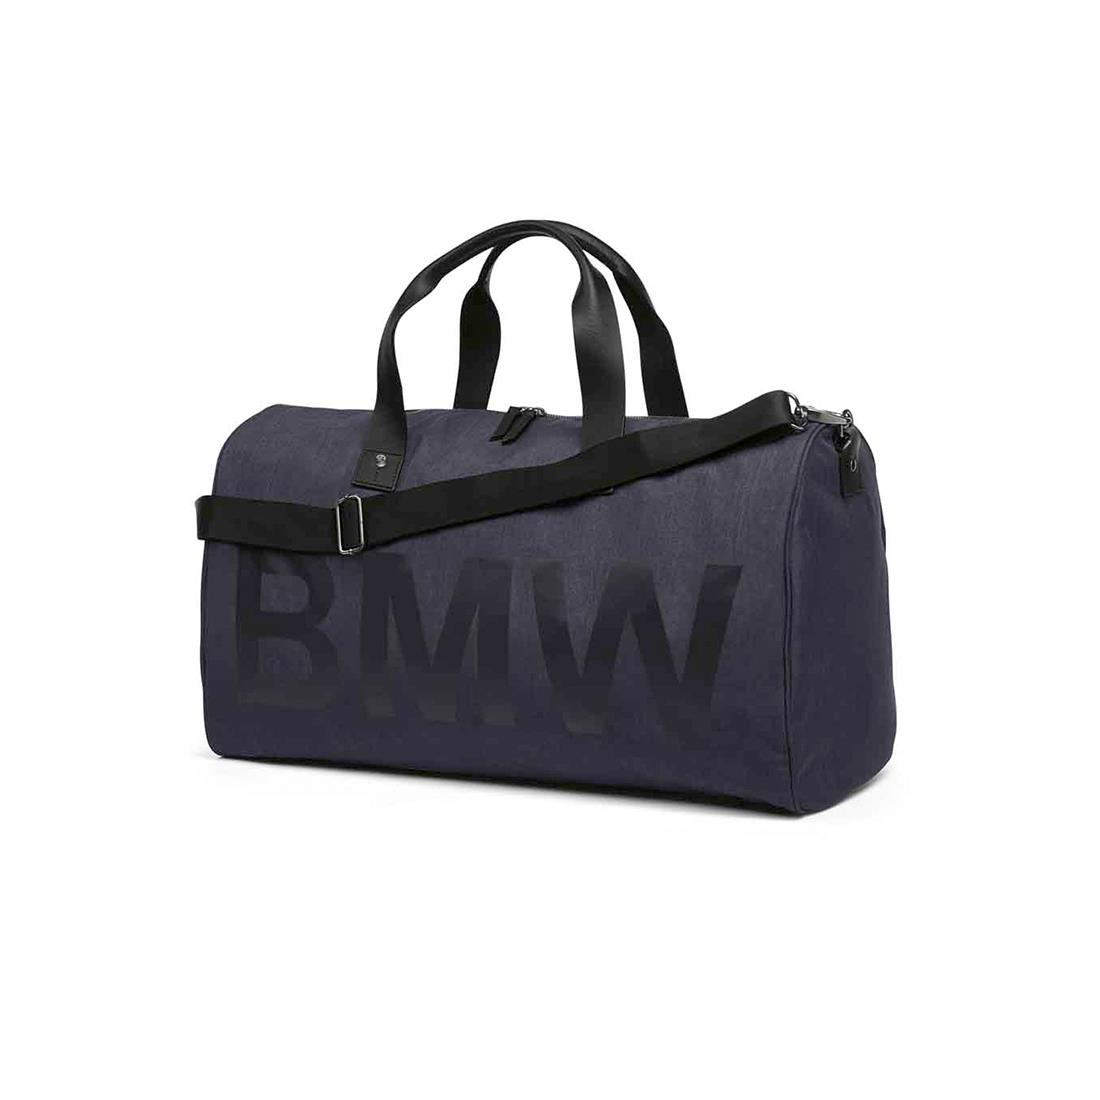 BMW MODERN DUFFLE BAG